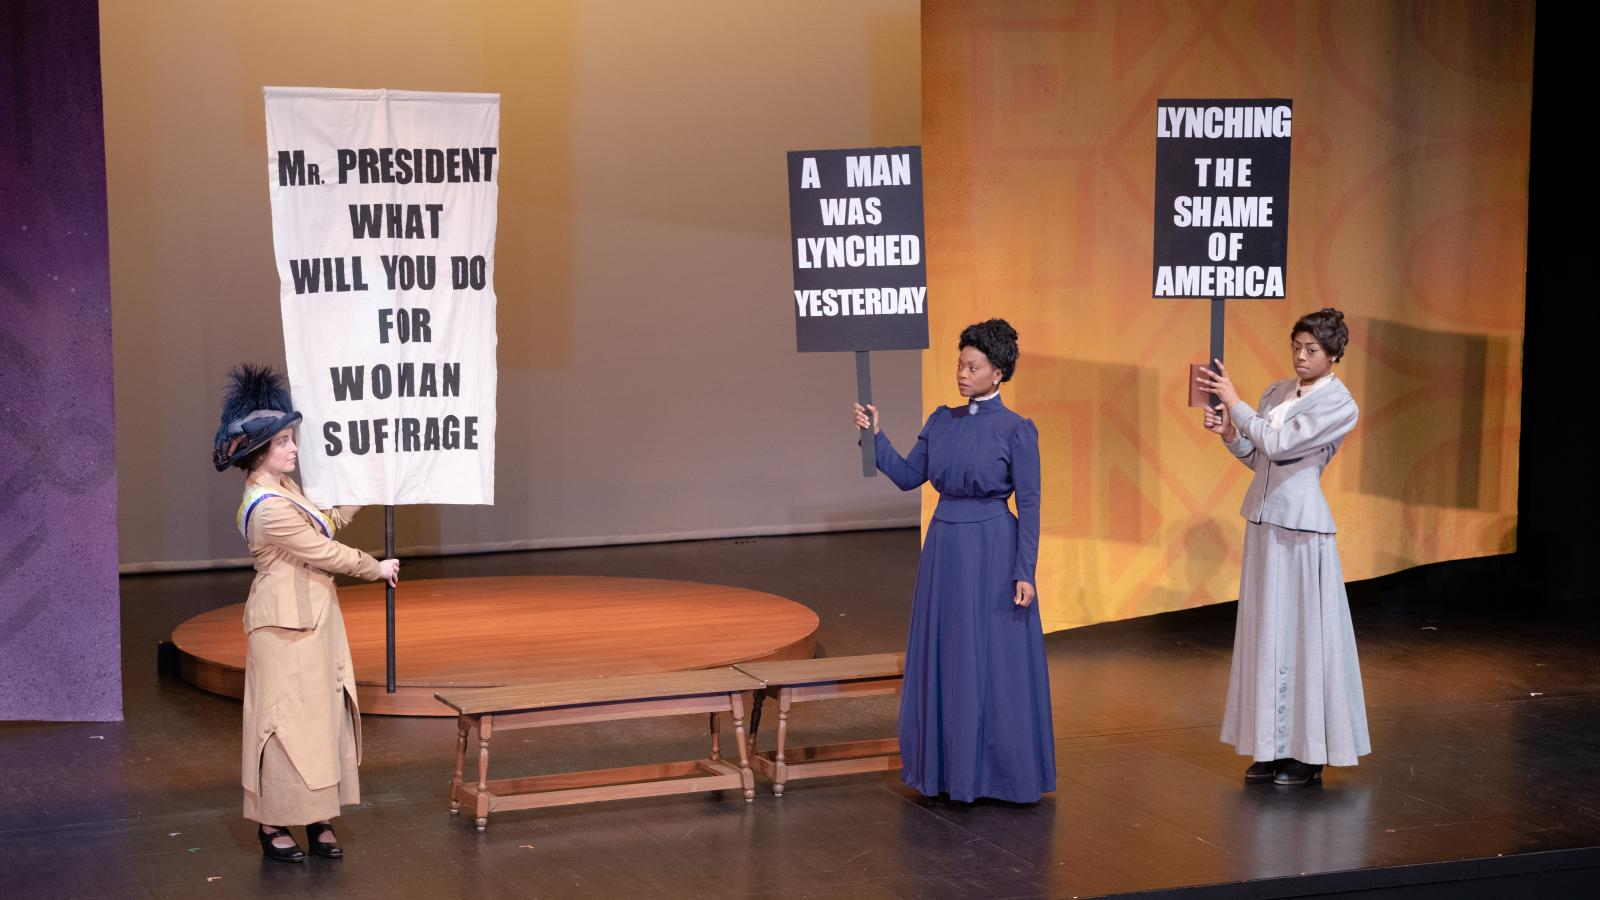 Actresses hold up picket signs about suffrage and lynching